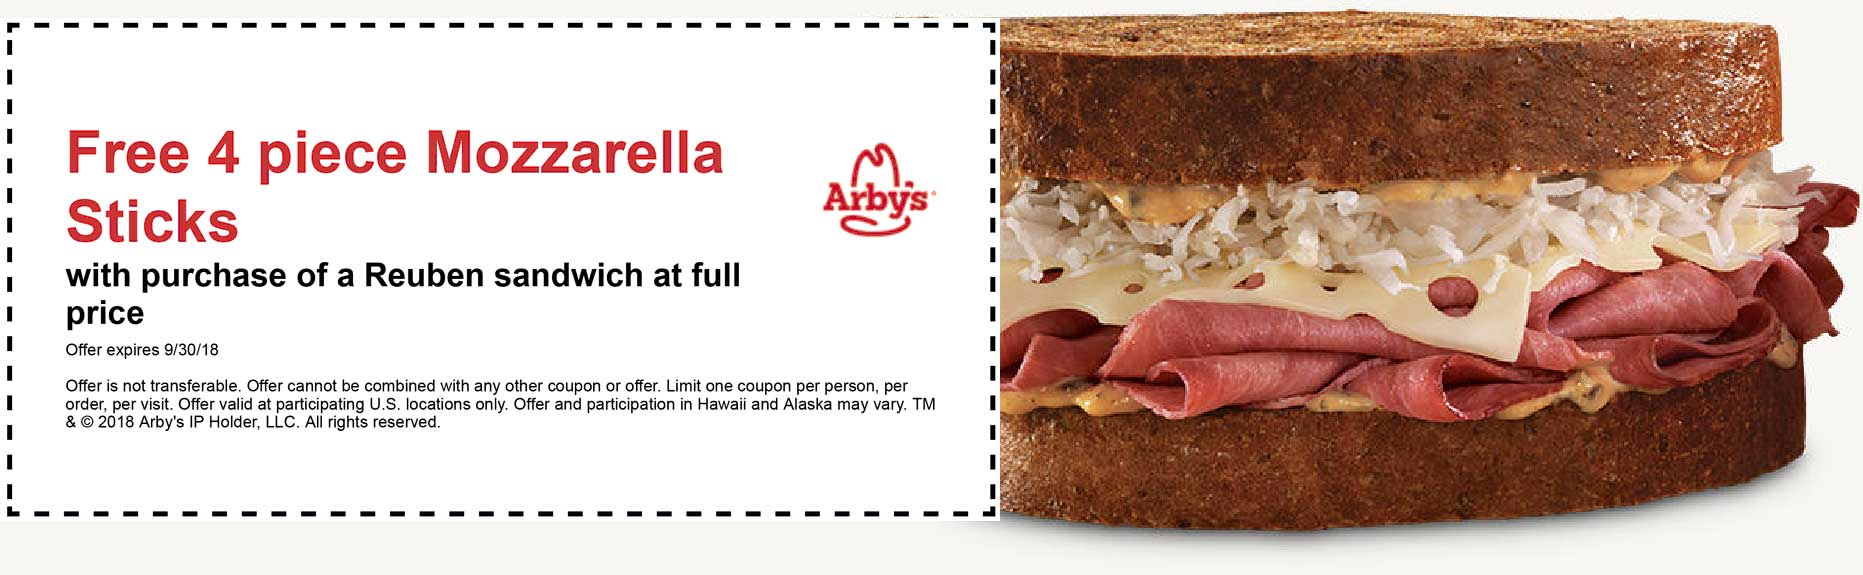 Arbys coupons & promo code for [February 2020]